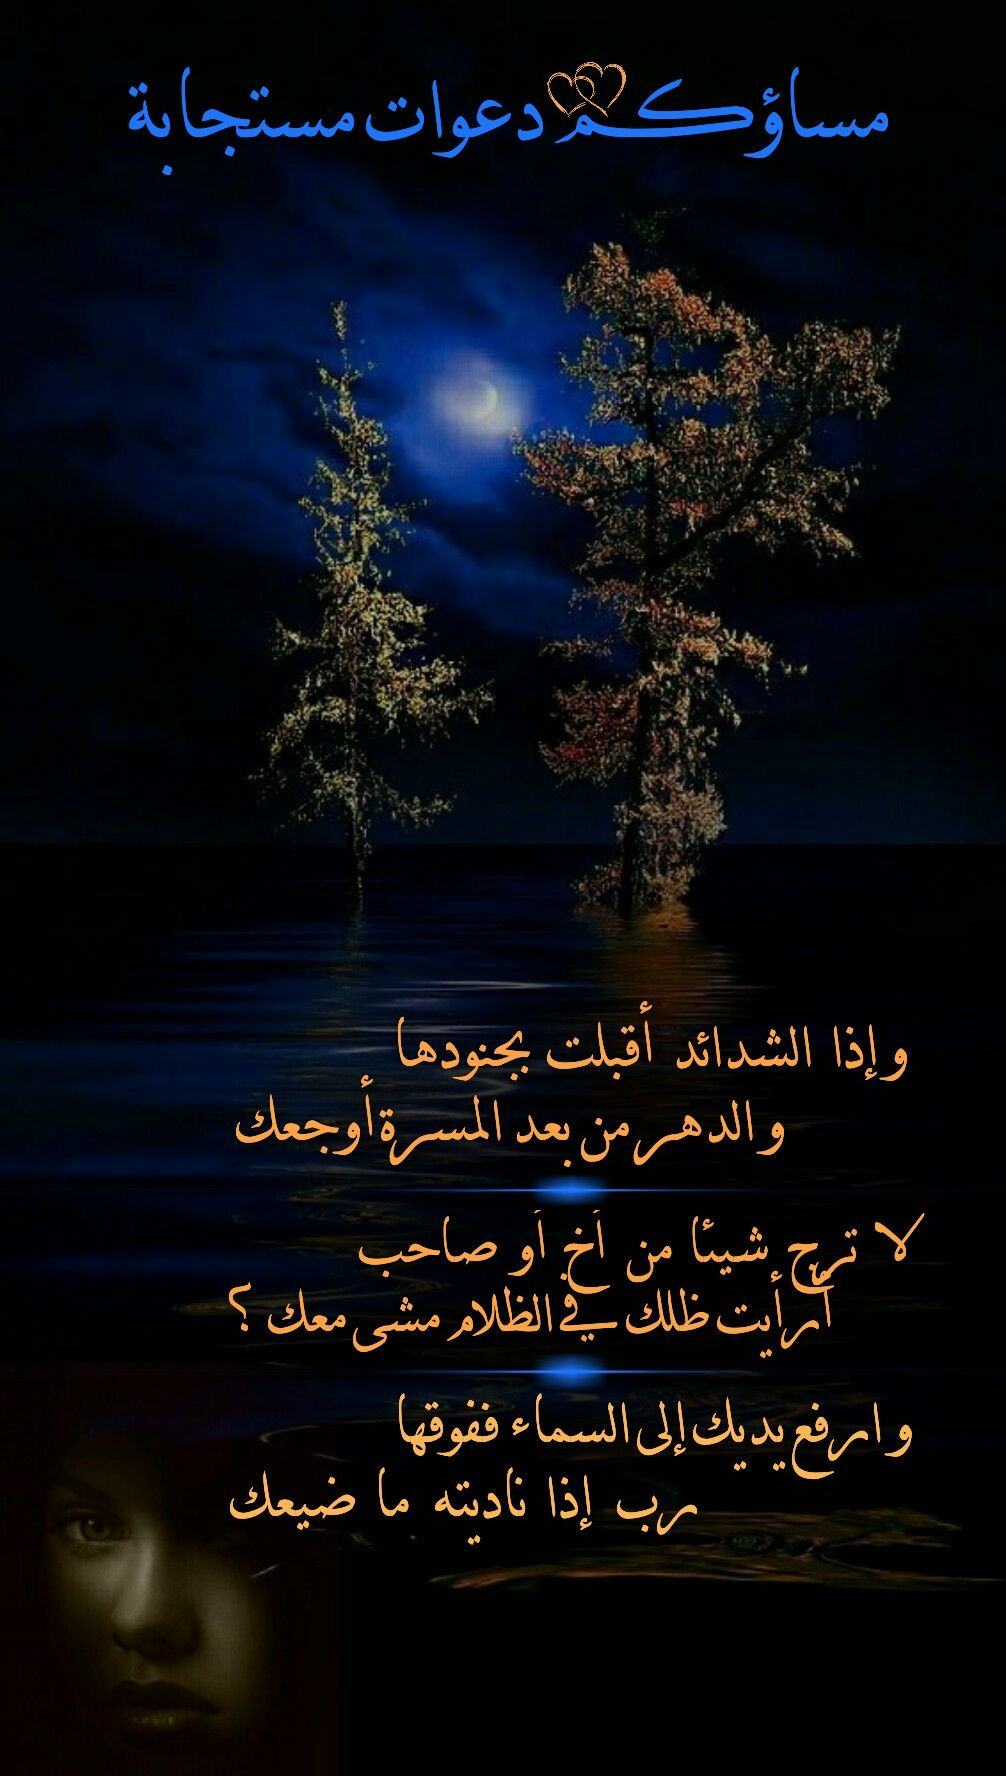 Pin By Eme Mahmoud On صباحيات و مسائيات Good Morning Images Good Morning Messages Morning Images